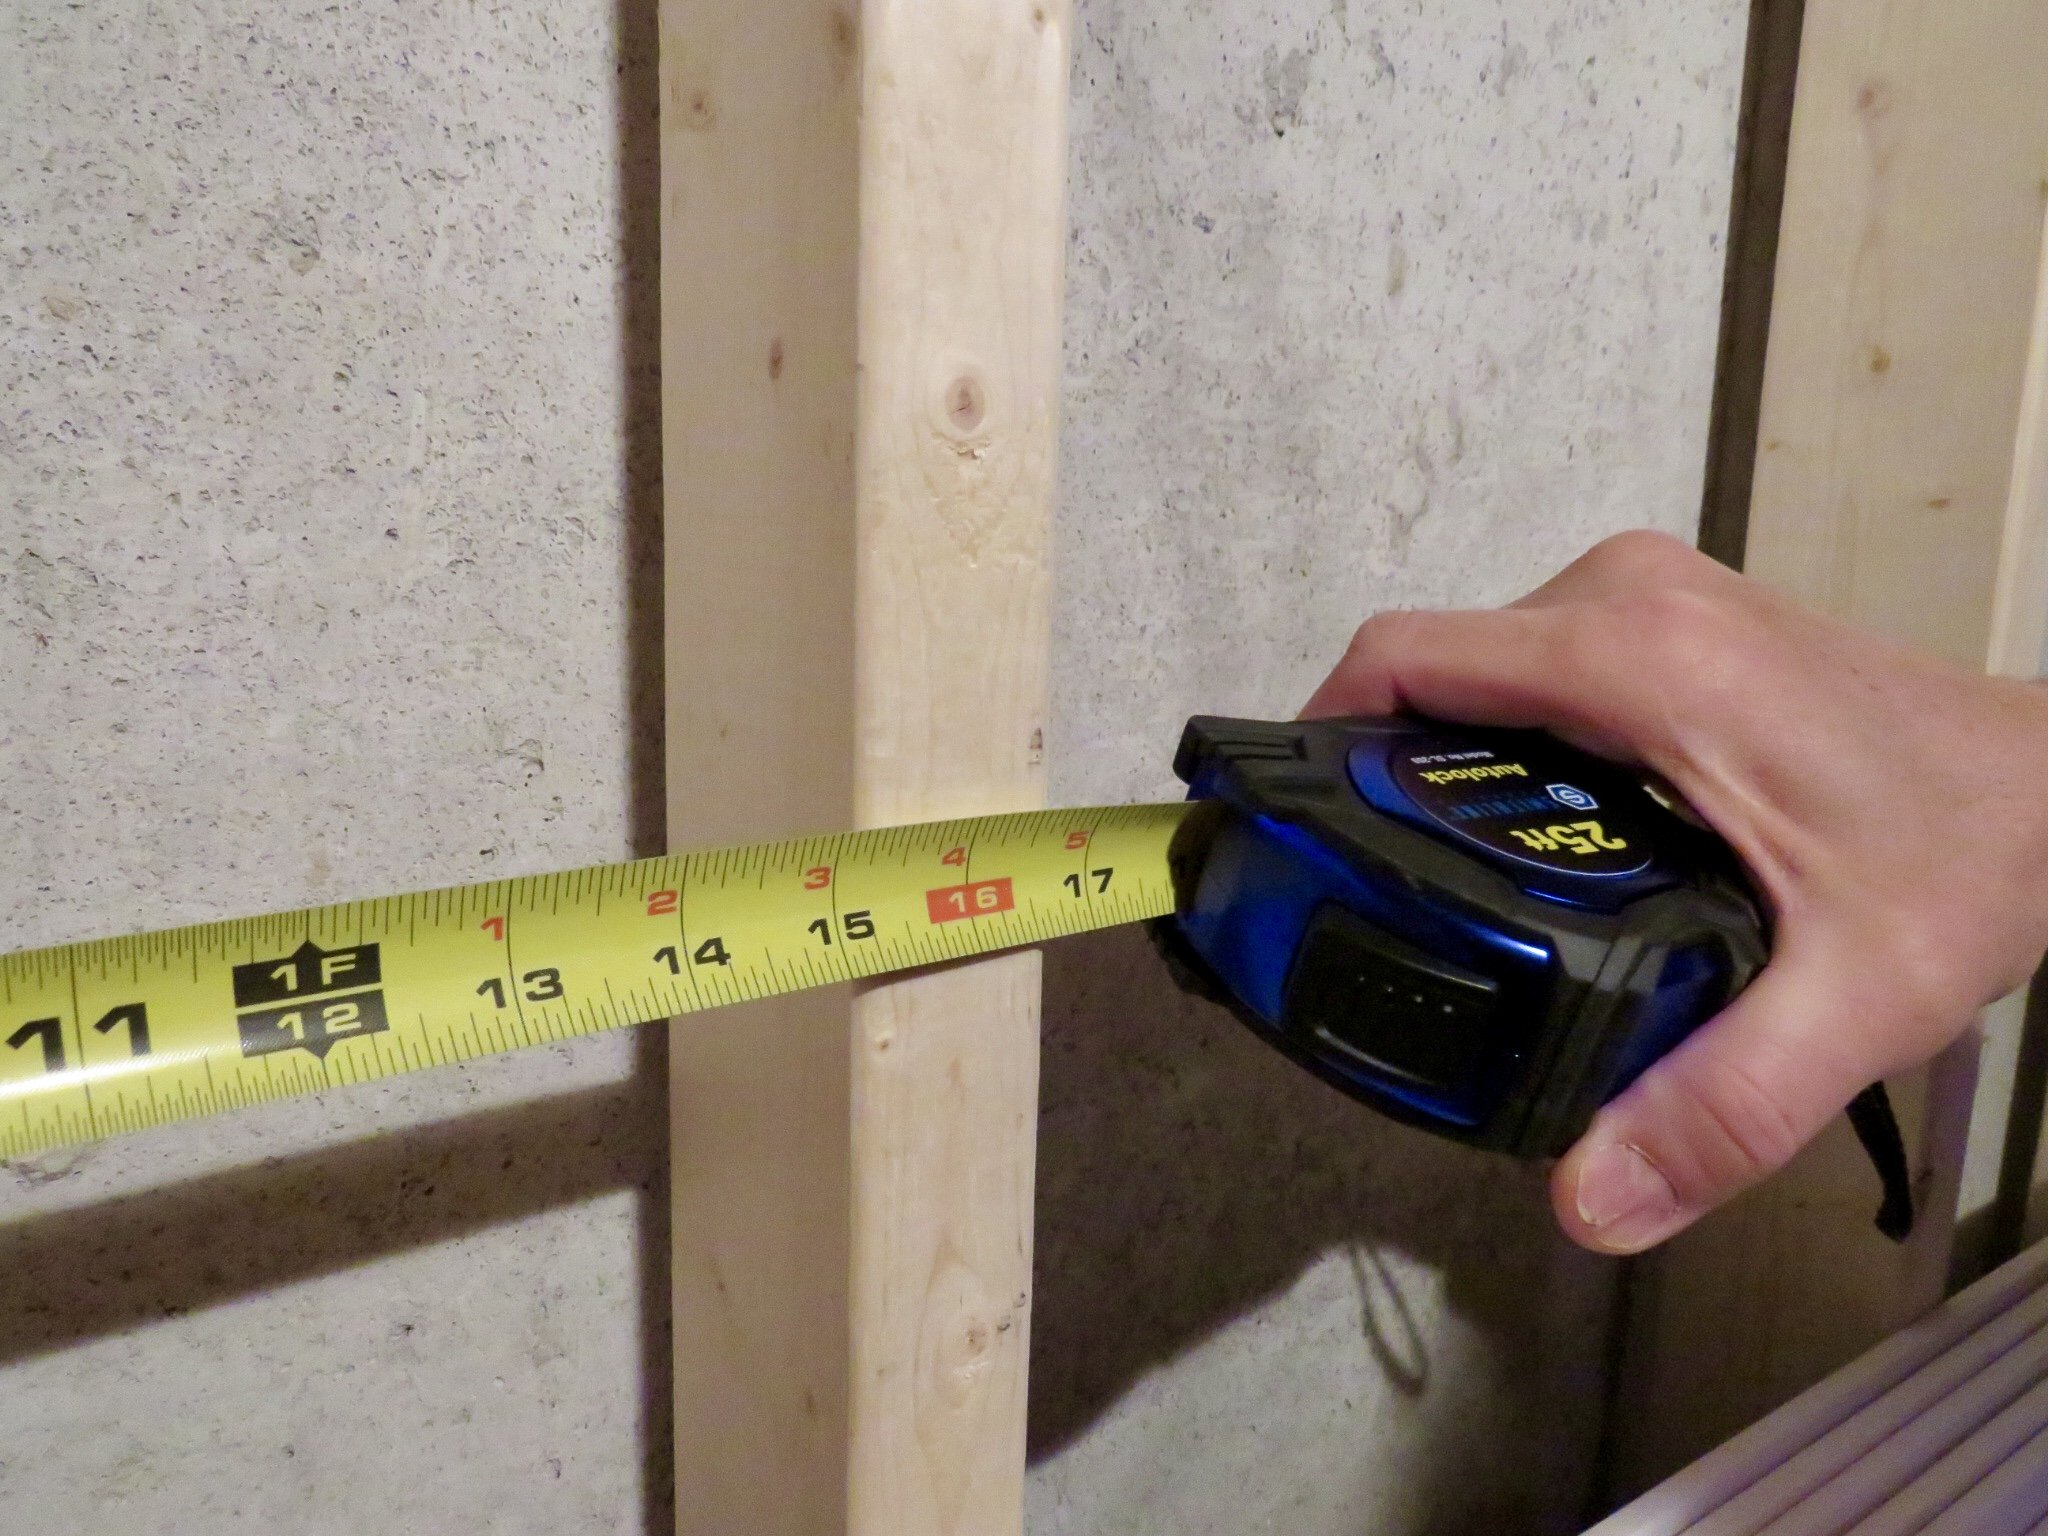 Smithline SL-200 Professional Grade Auto-lock Tape Measure by Smithline Products (Image #5)